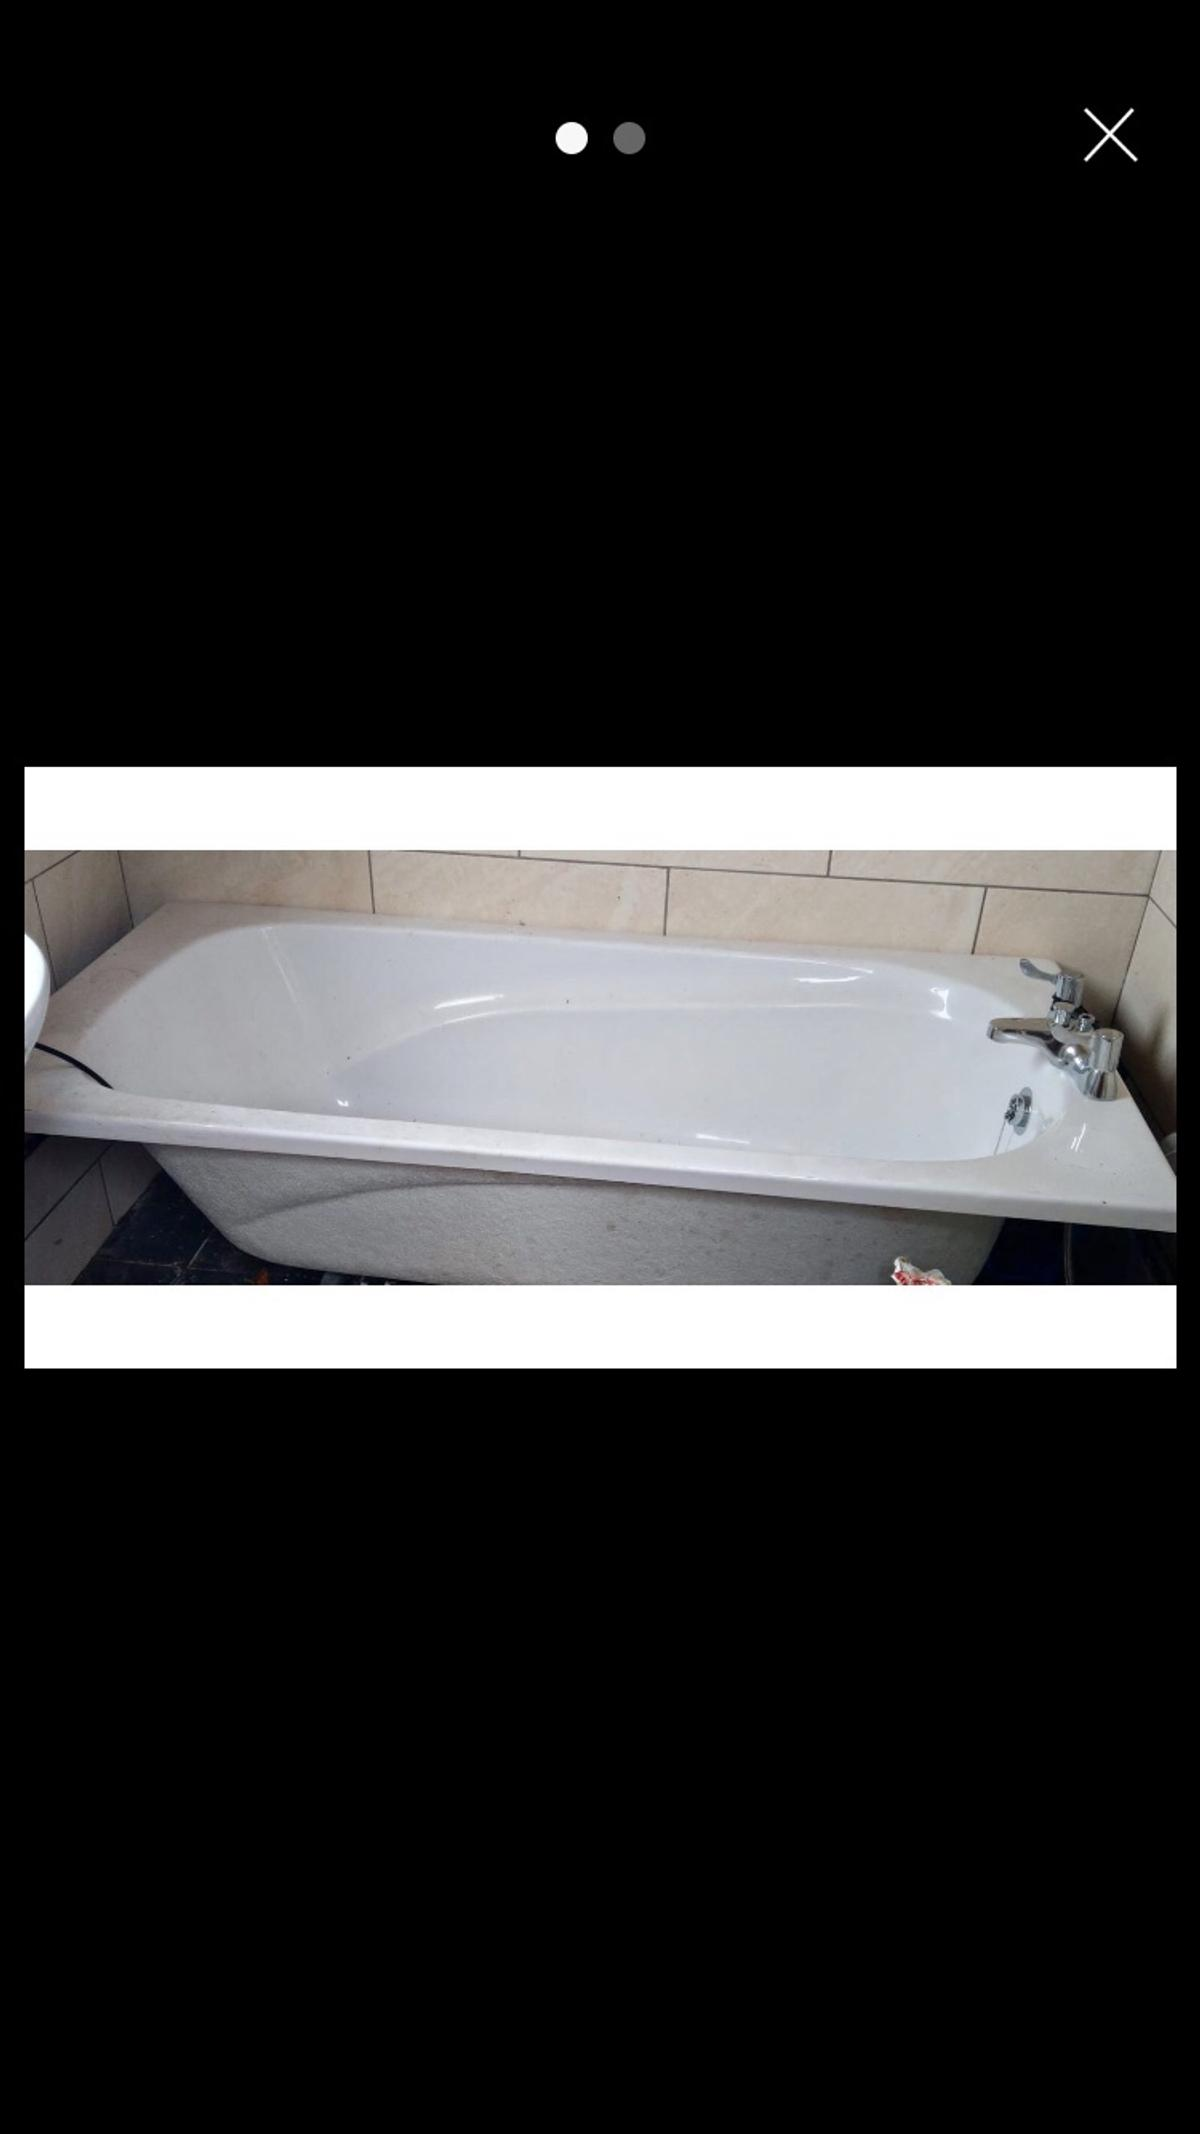 Bathtub good condition Hardly used Size 1700mm Stored in the garage during house move Taps were bought separately but included within price